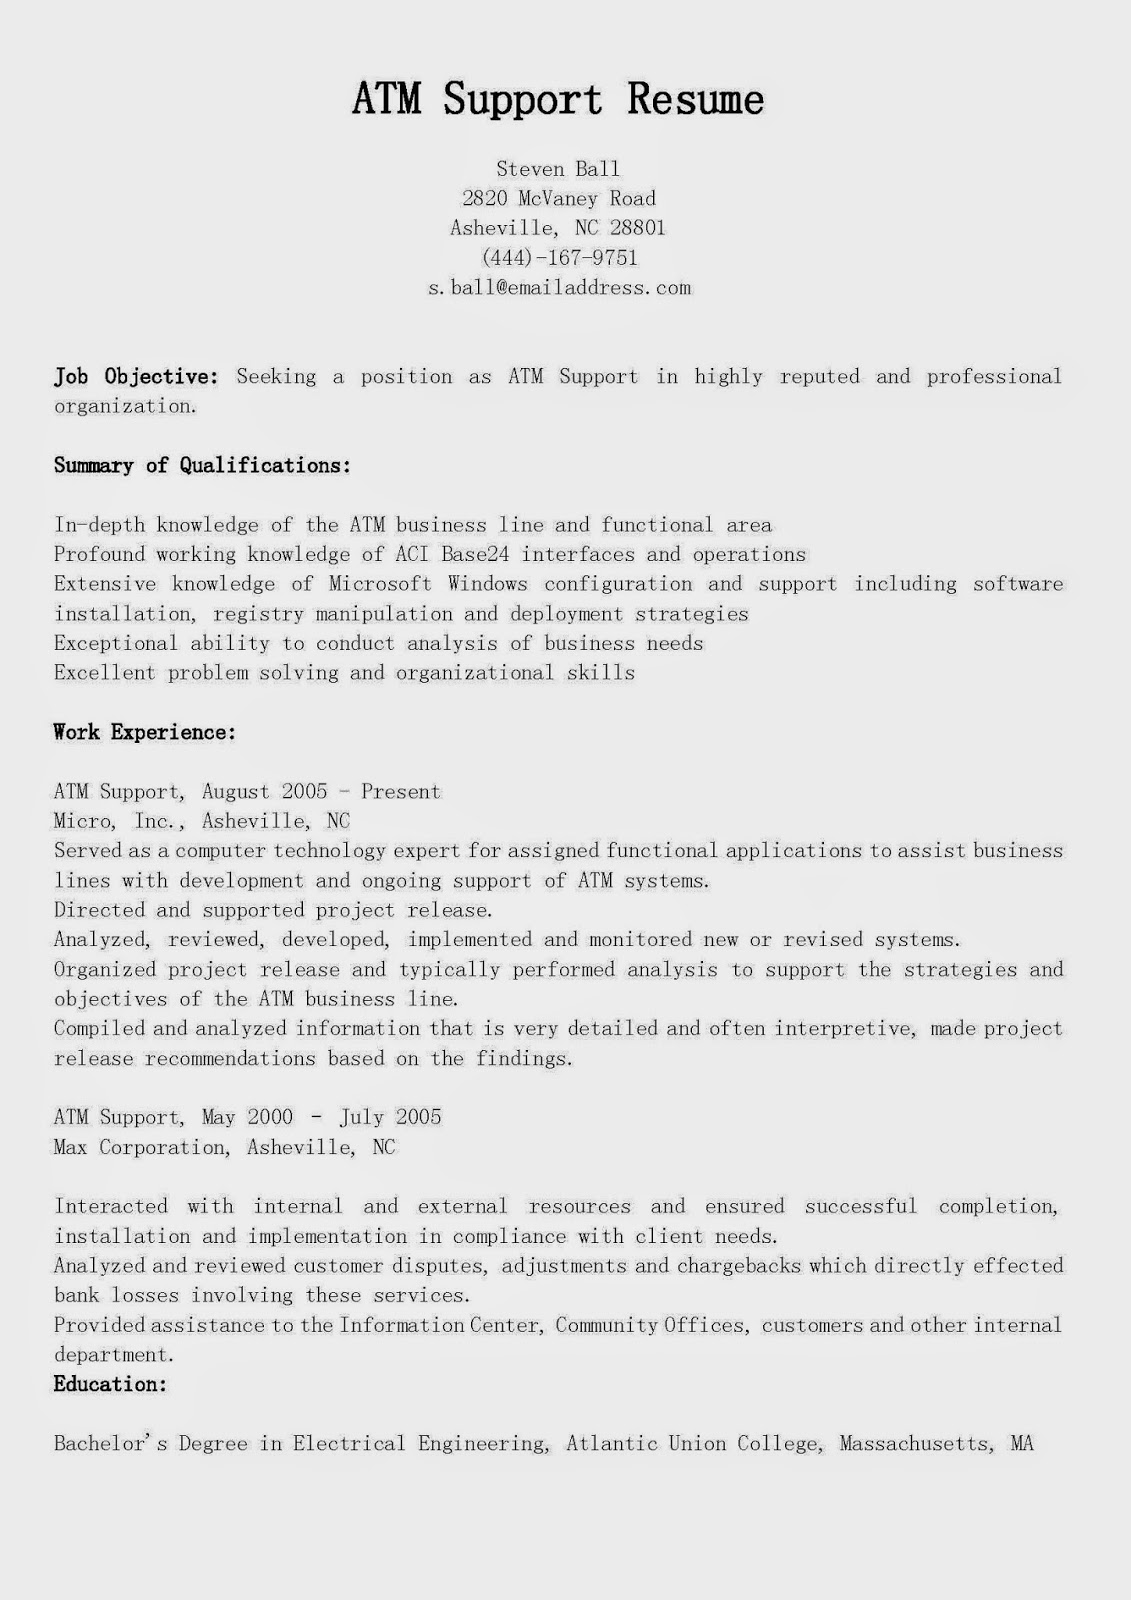 Delighted 1 Page Brochure Template Tiny 1 Year Experience Resume Format For Dot Net Solid 10 Best Resume Services 10 Minute Resume Builder Youthful 10 Tips For Writing A Resume Fresh1099 Agreement Template Sample Resume Email Support   Vosvete